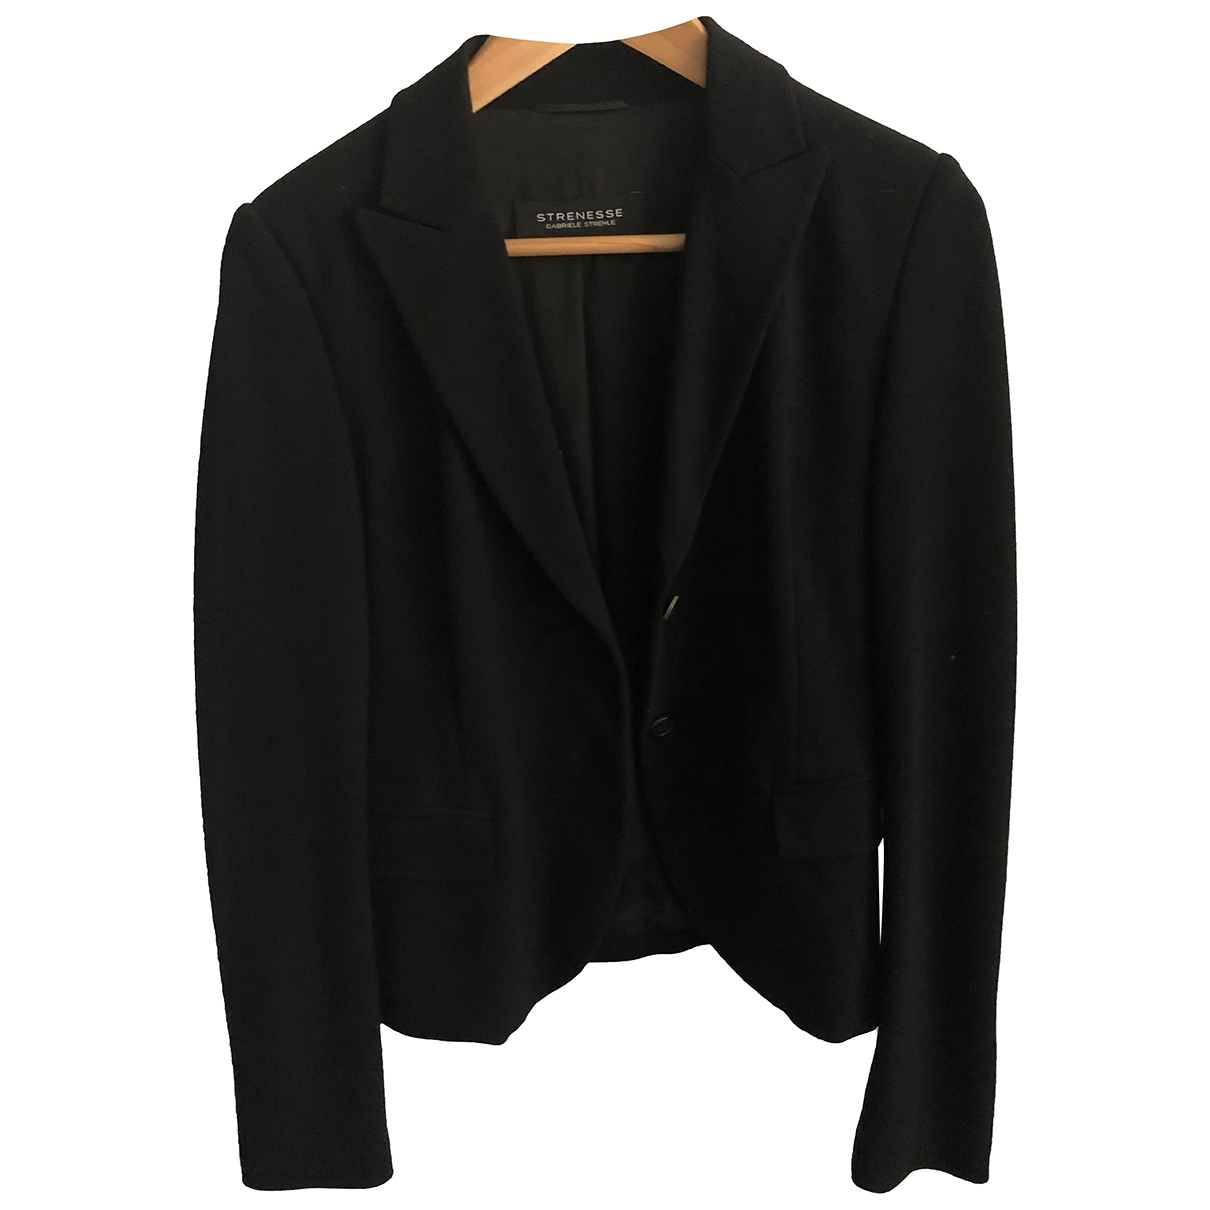 Strenesse \N Black Cotton jacket for Women 36 FR